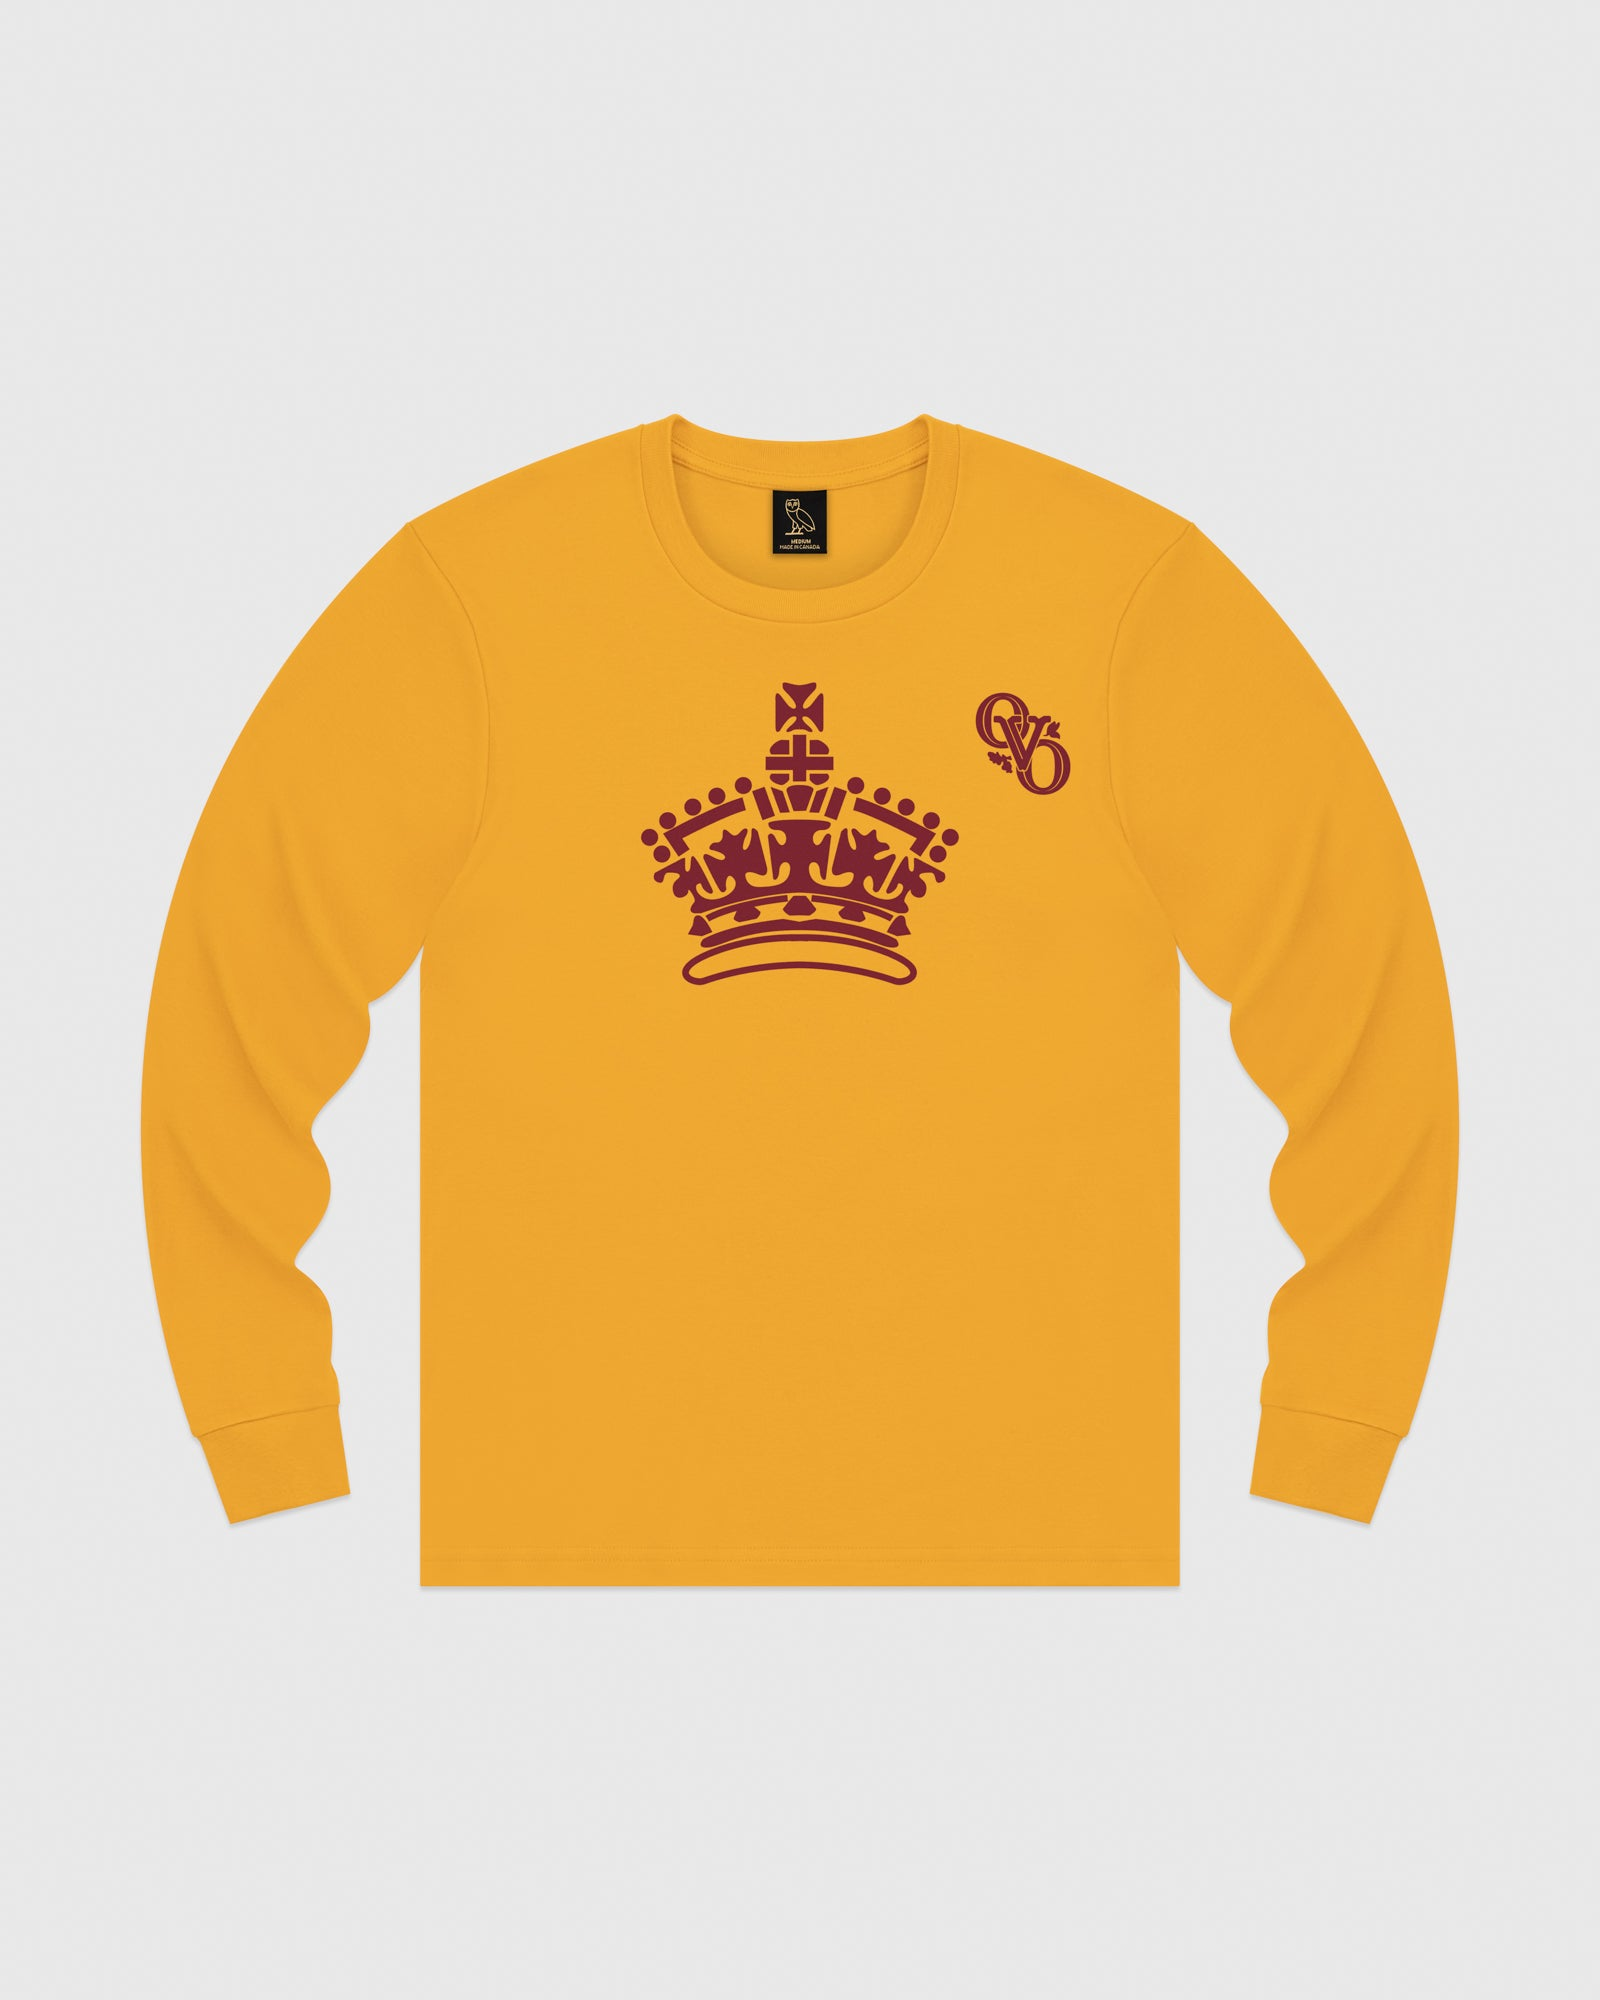 ROYAL LONGSLEEVE T-SHIRT - AUTUMN YELLOW IMAGE #1